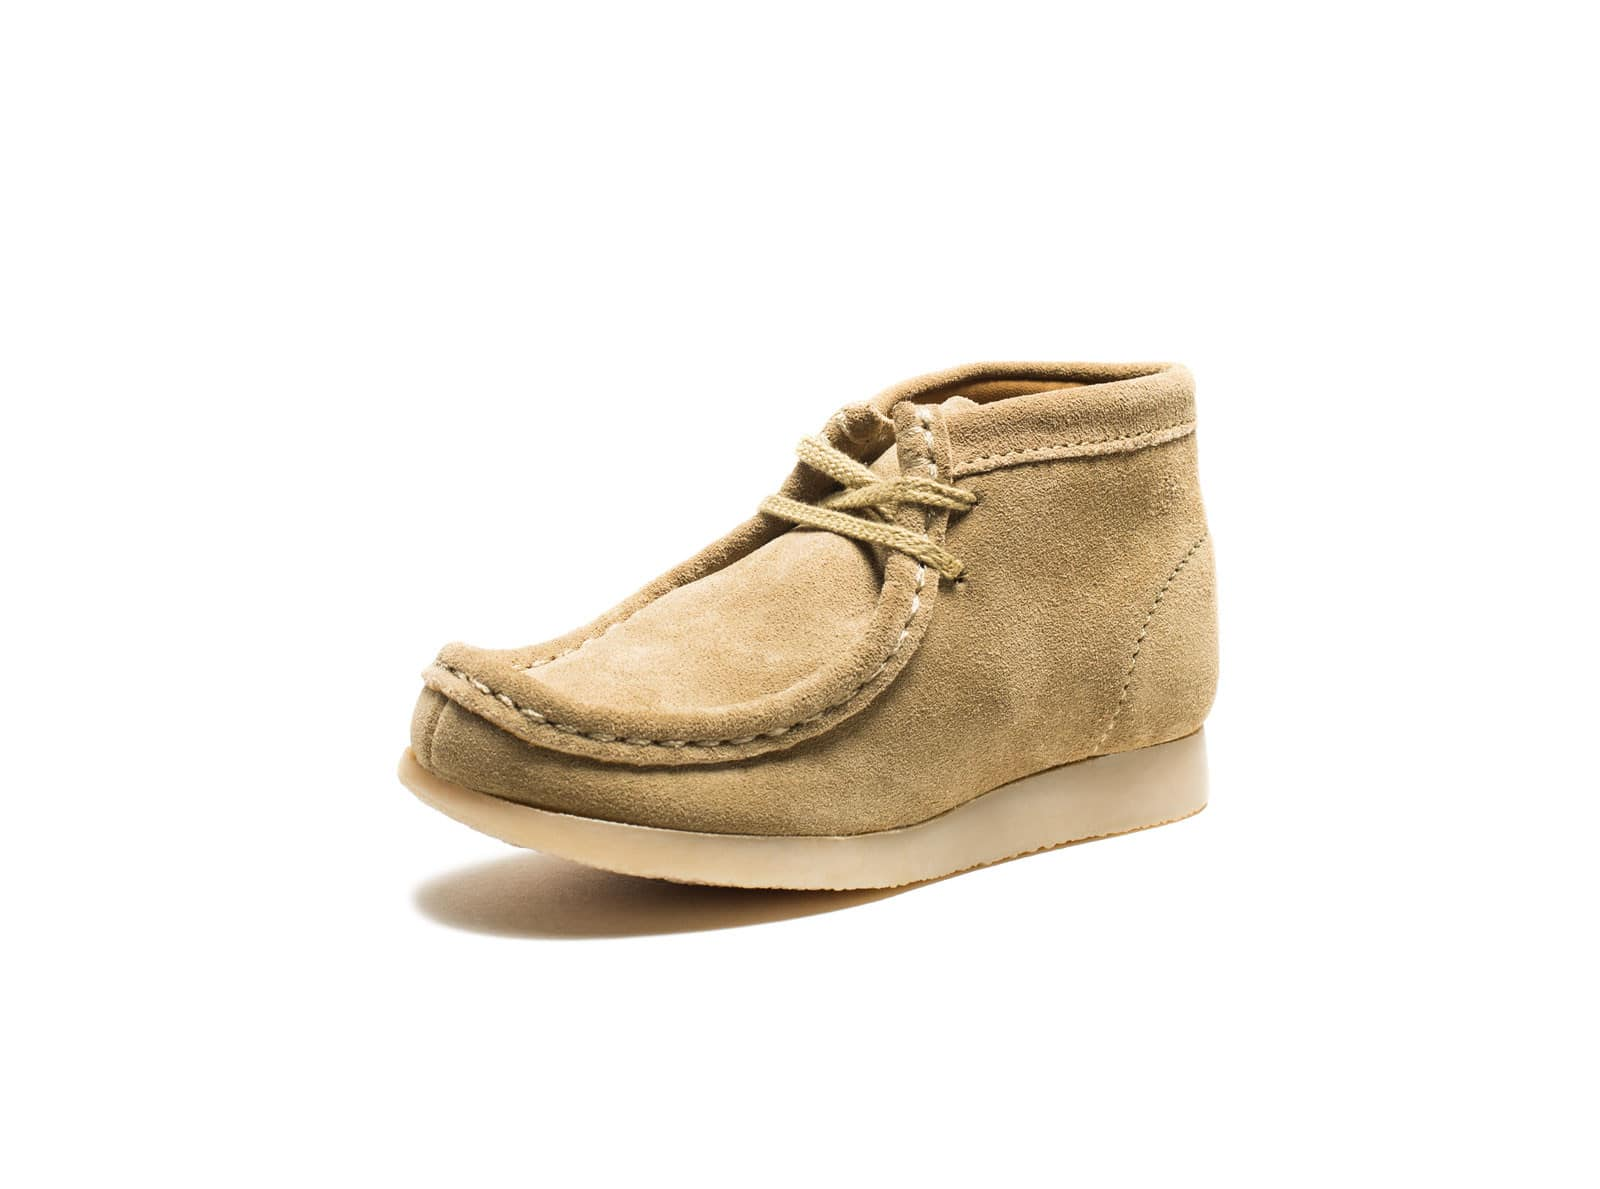 TD/PS WALLABEE BOOT (SAND SUEDE)